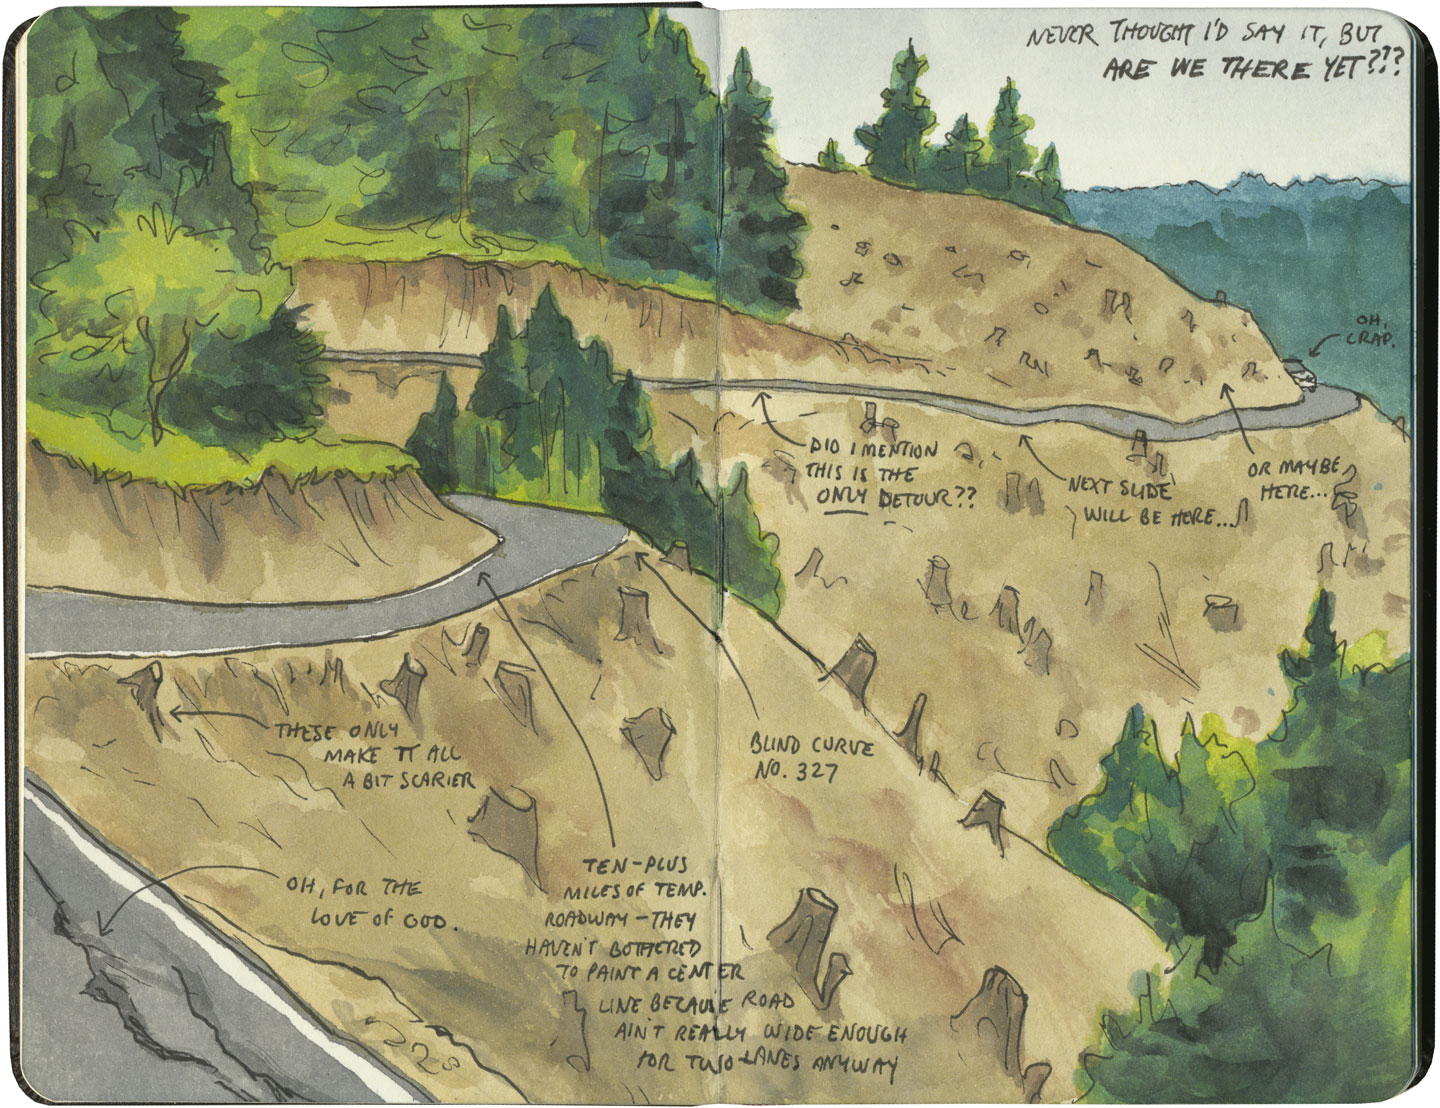 Landslide detour sketch by Chandler O'Leary